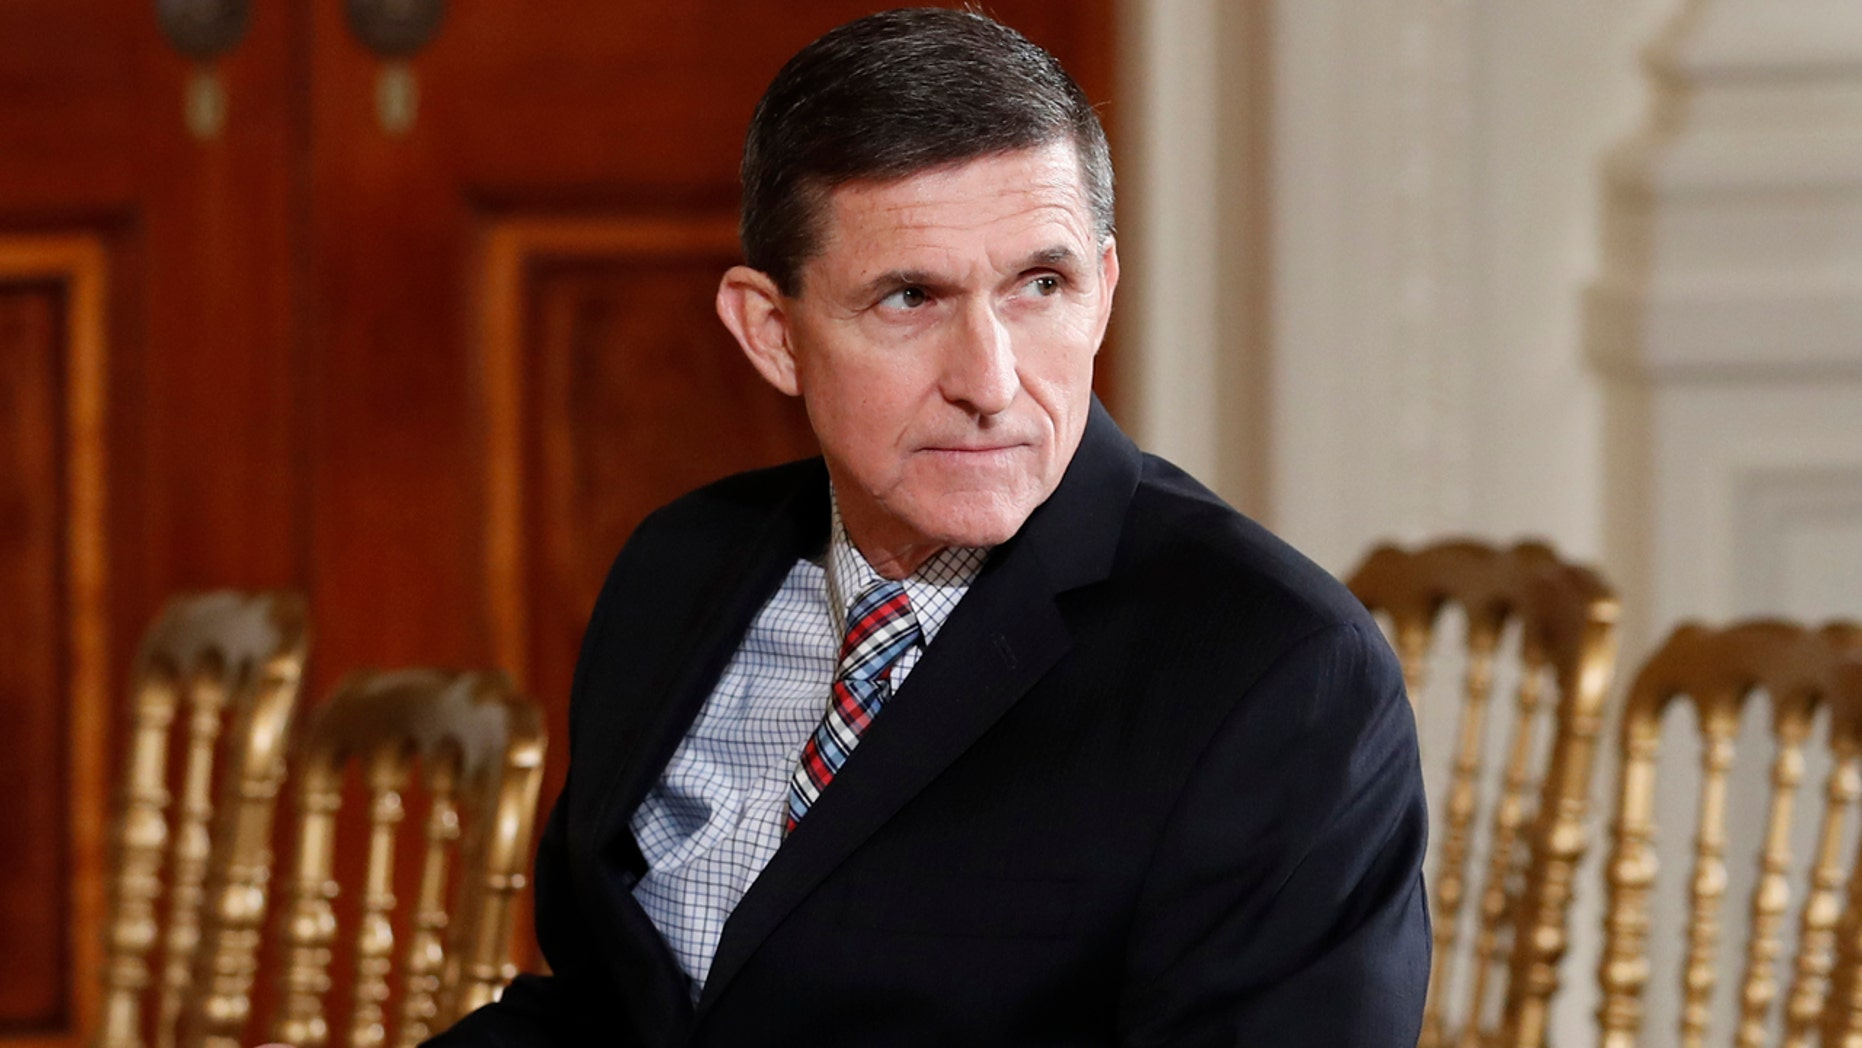 Michael Flynn has pleaded guilty to lying to FBI agents.